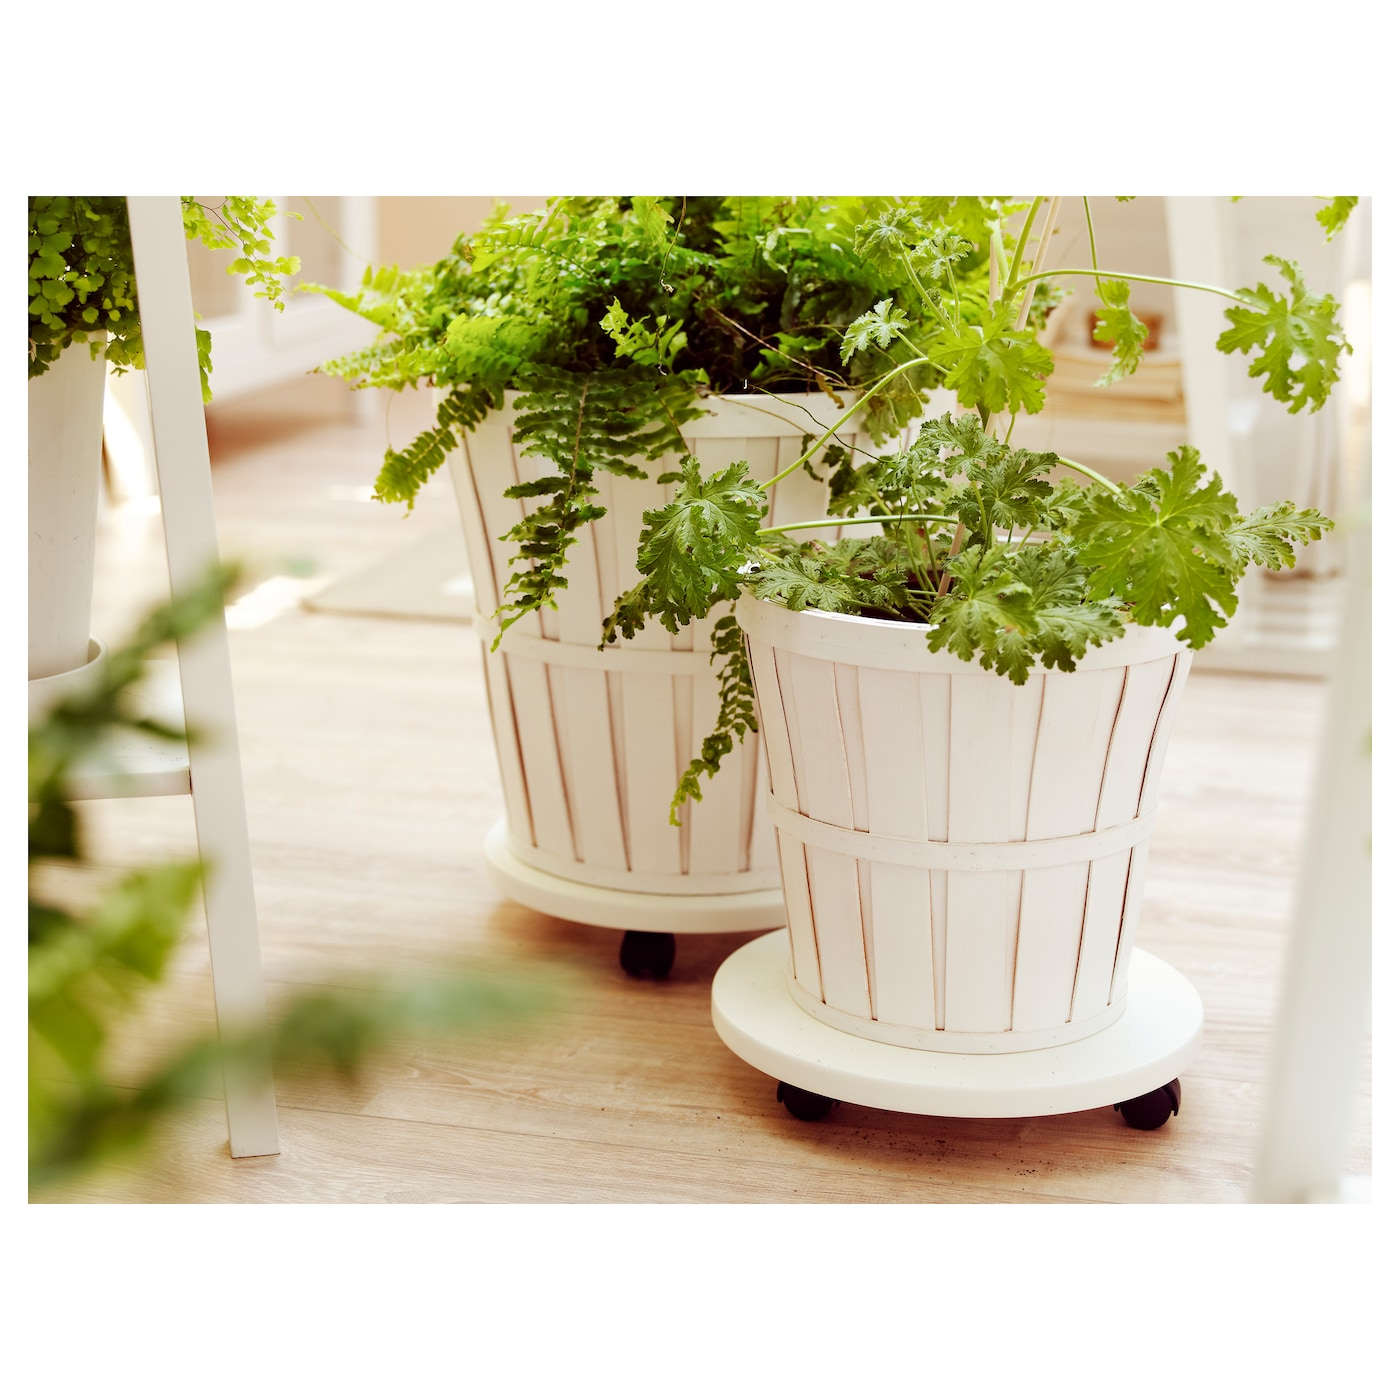 IKEA KALASA plant pot A plastic inner pot makes the plant pot waterproof.